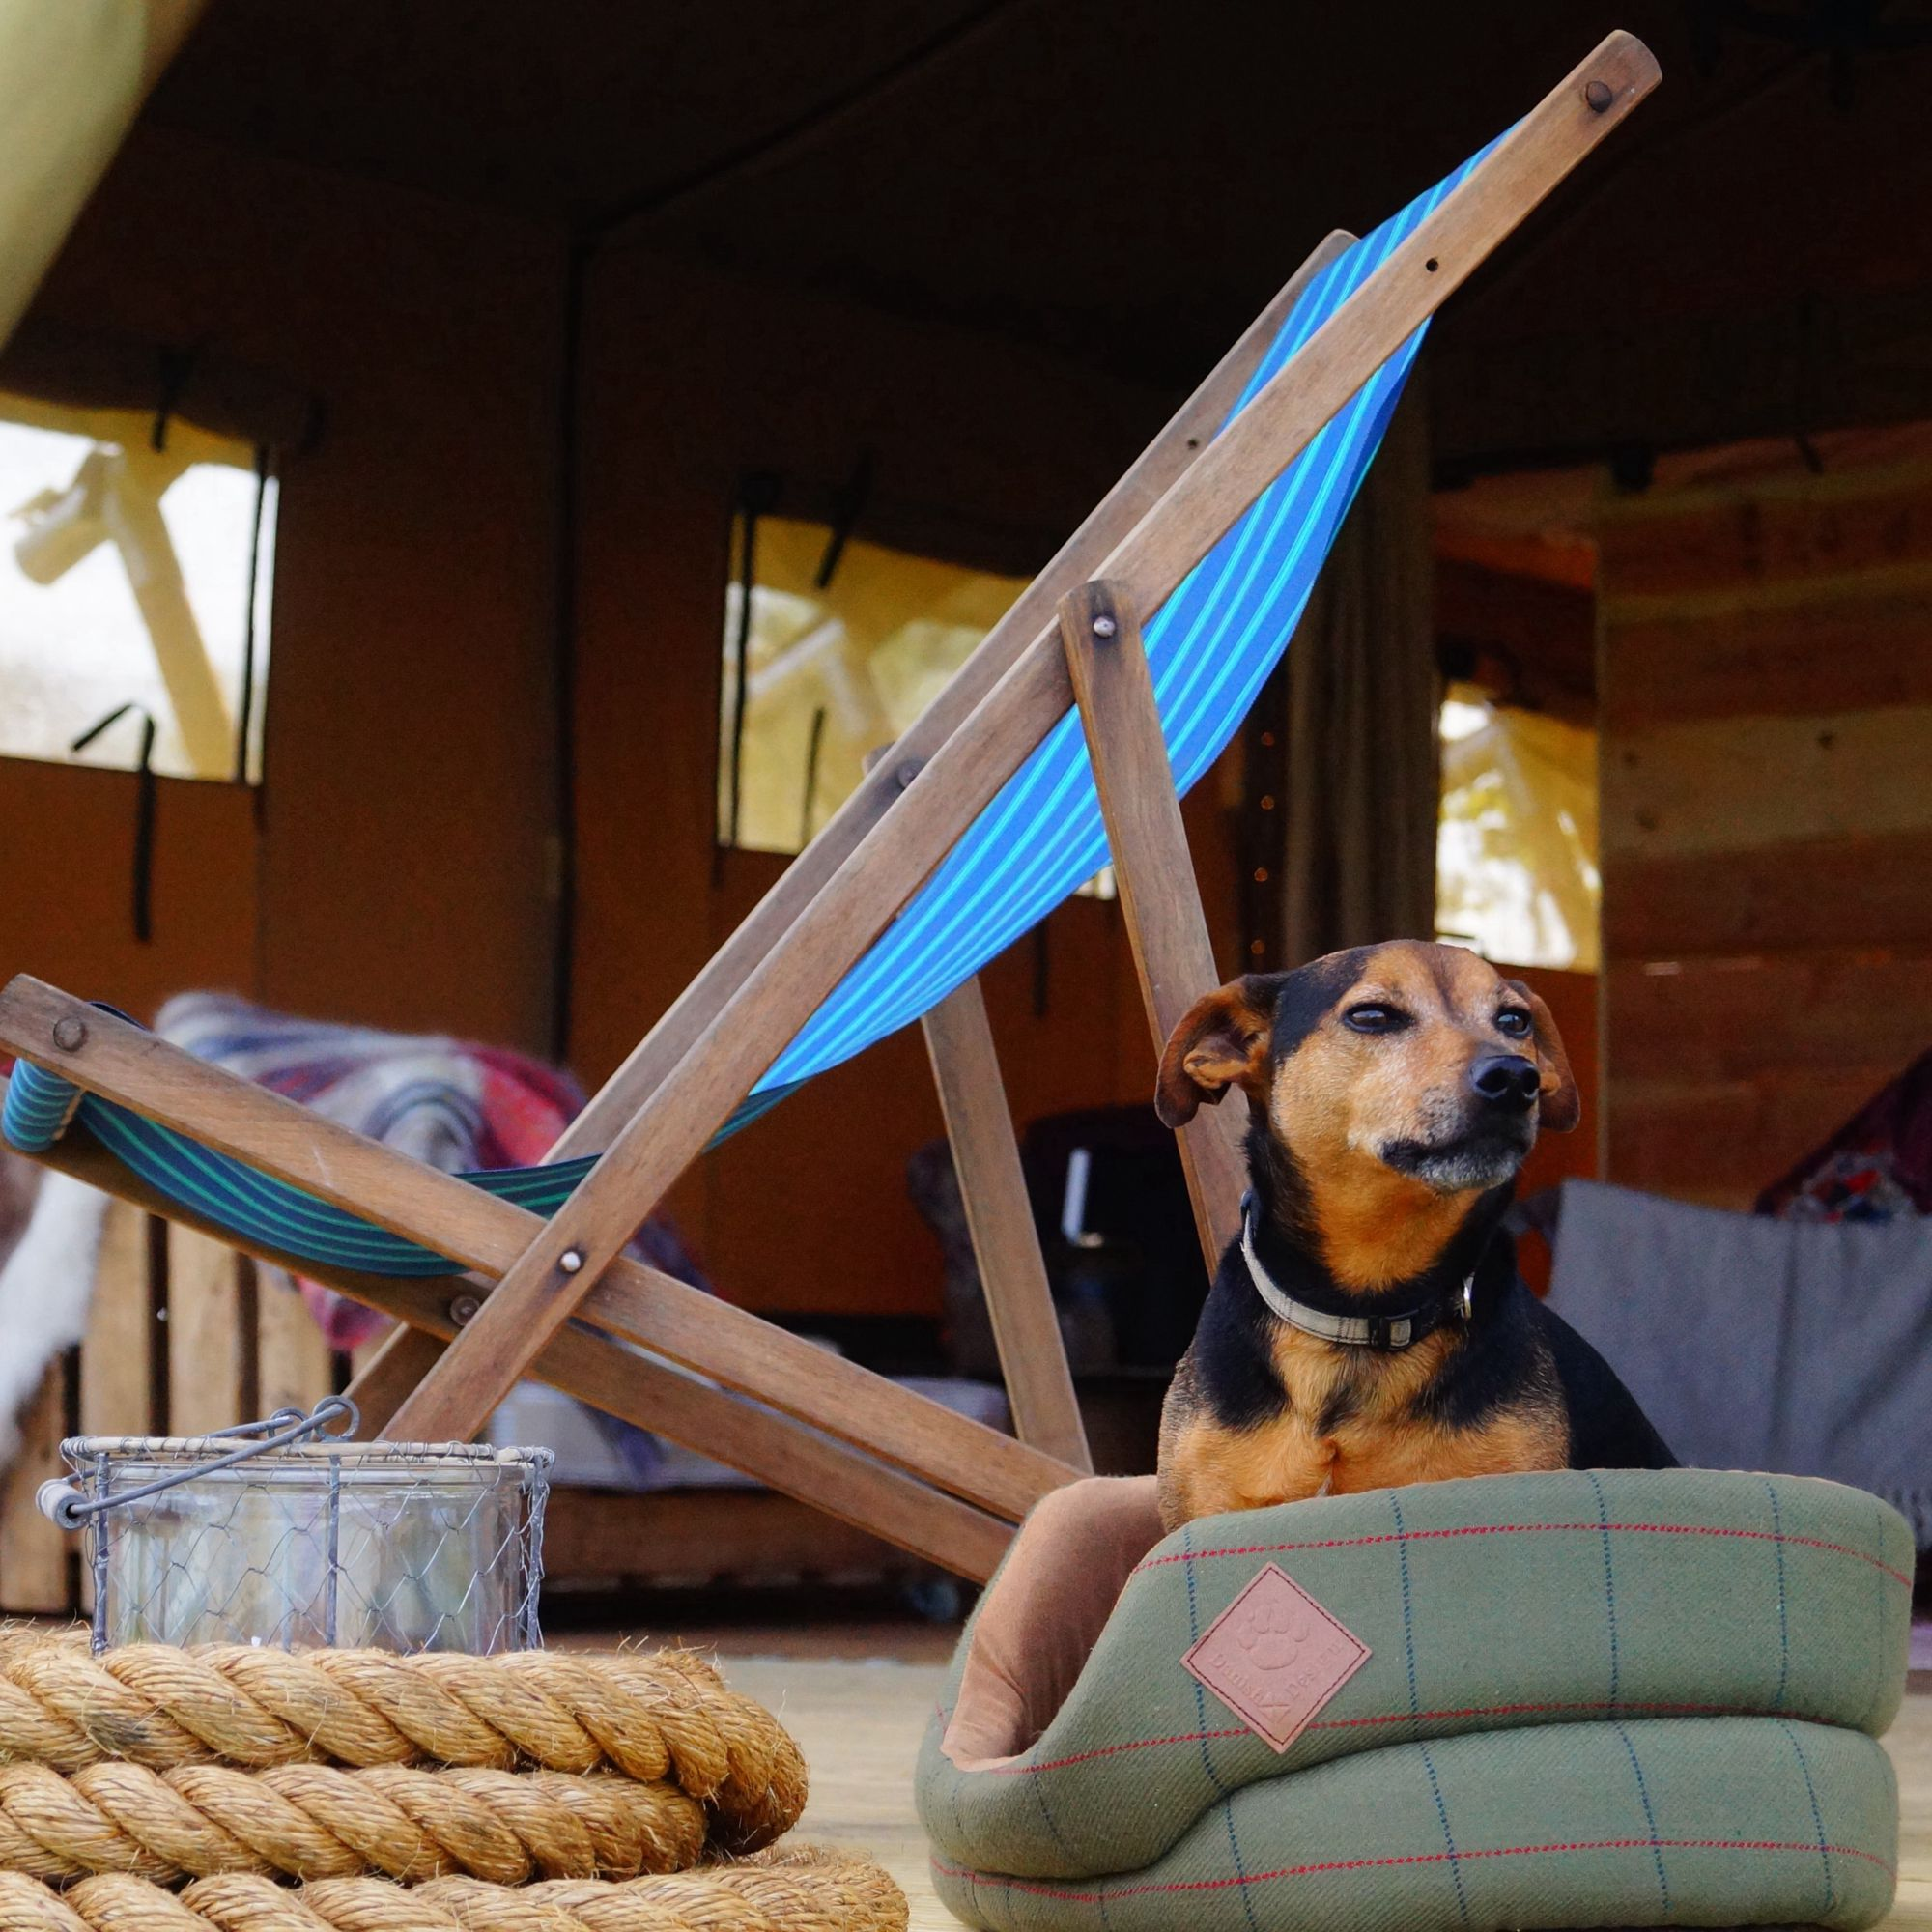 Glampers with Scampers: The Essential Guide to Glamping With